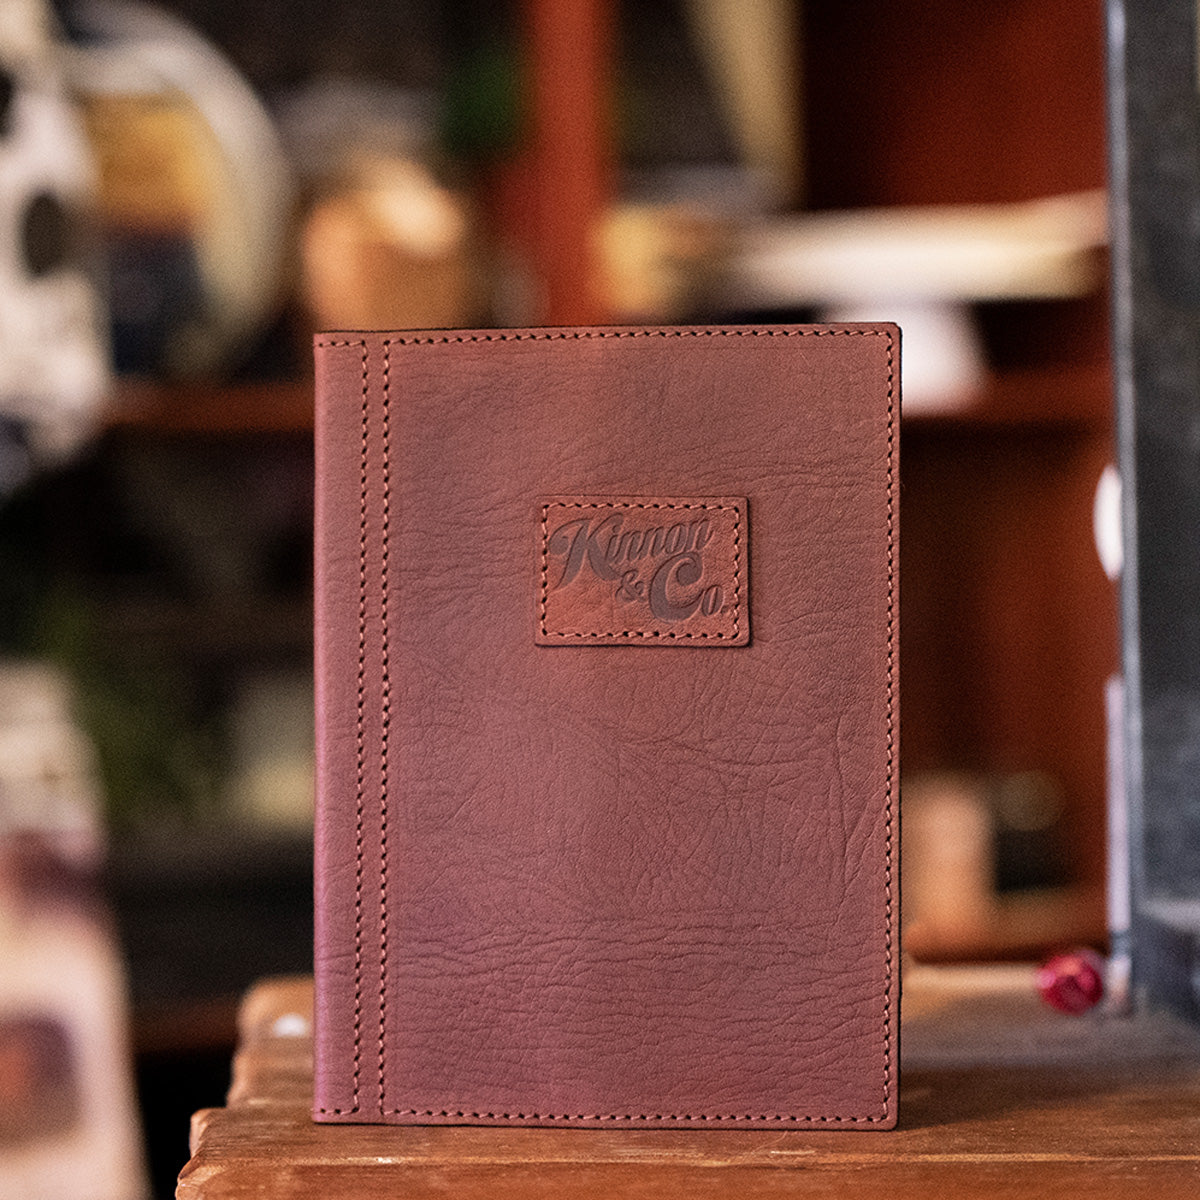 Kinnon and Co branded leather A5 diary cover